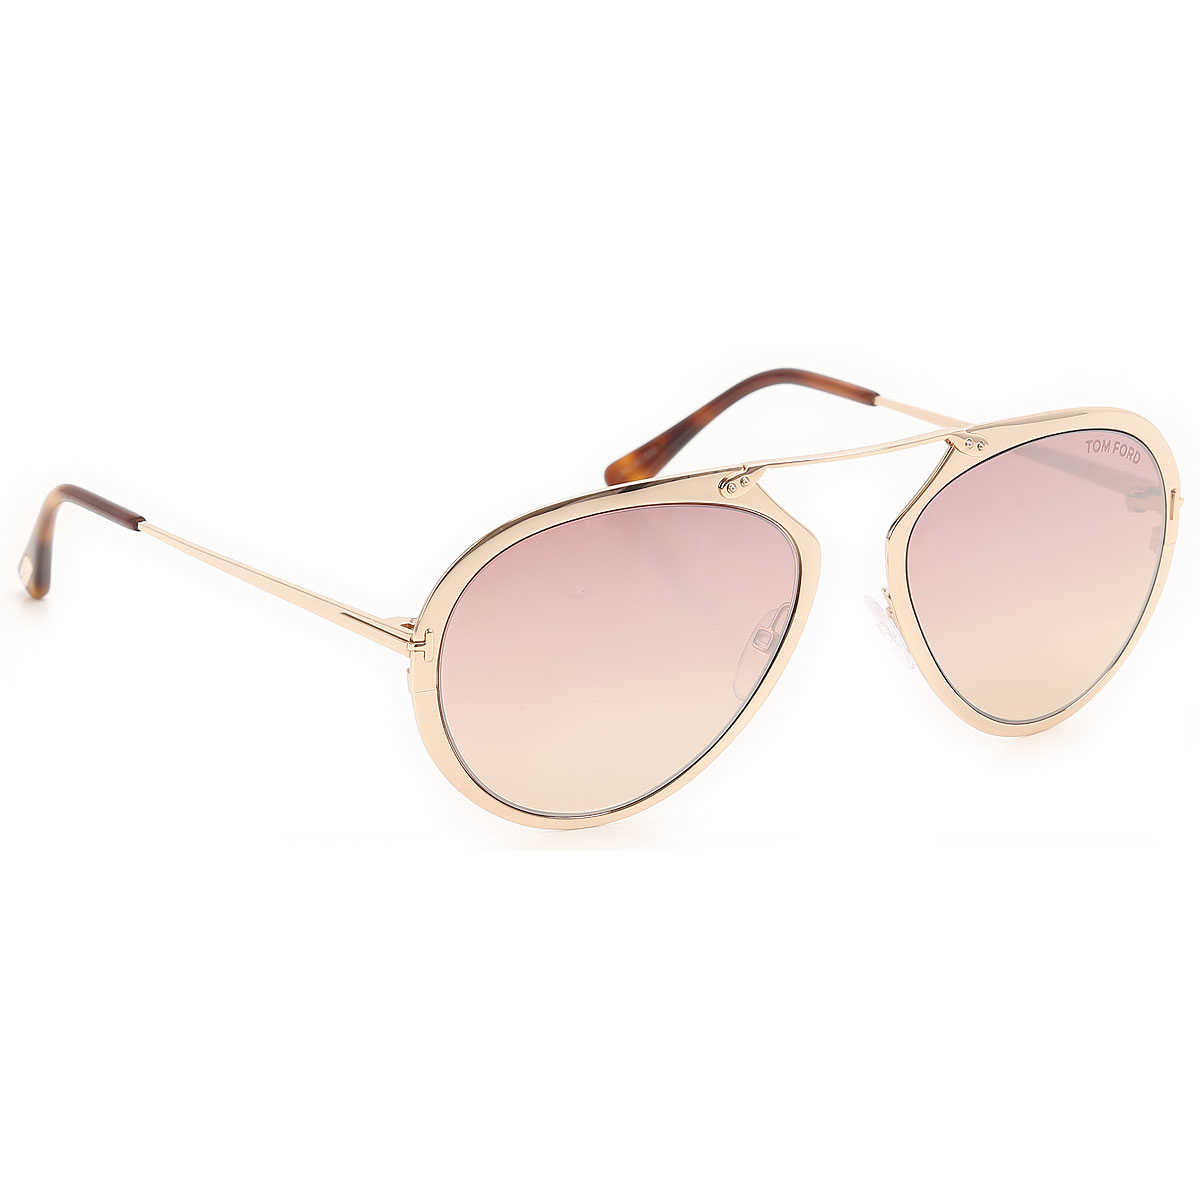 Tom Ford Sunglasses On Sale